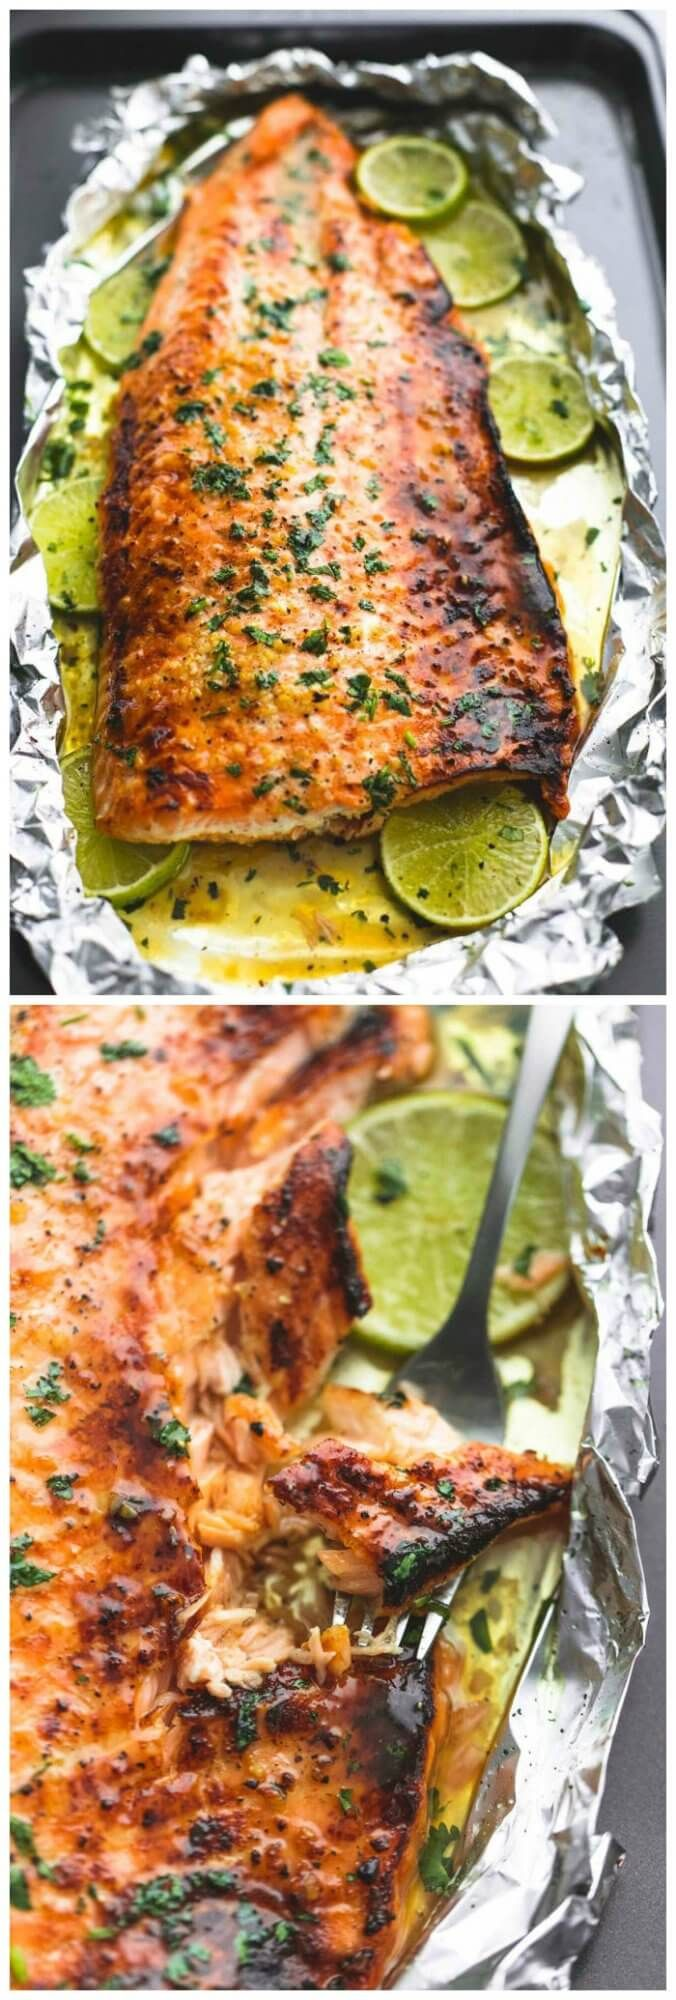 Baked Honey Cilantro Lime Salmon In Foil | Tasty Food Collection